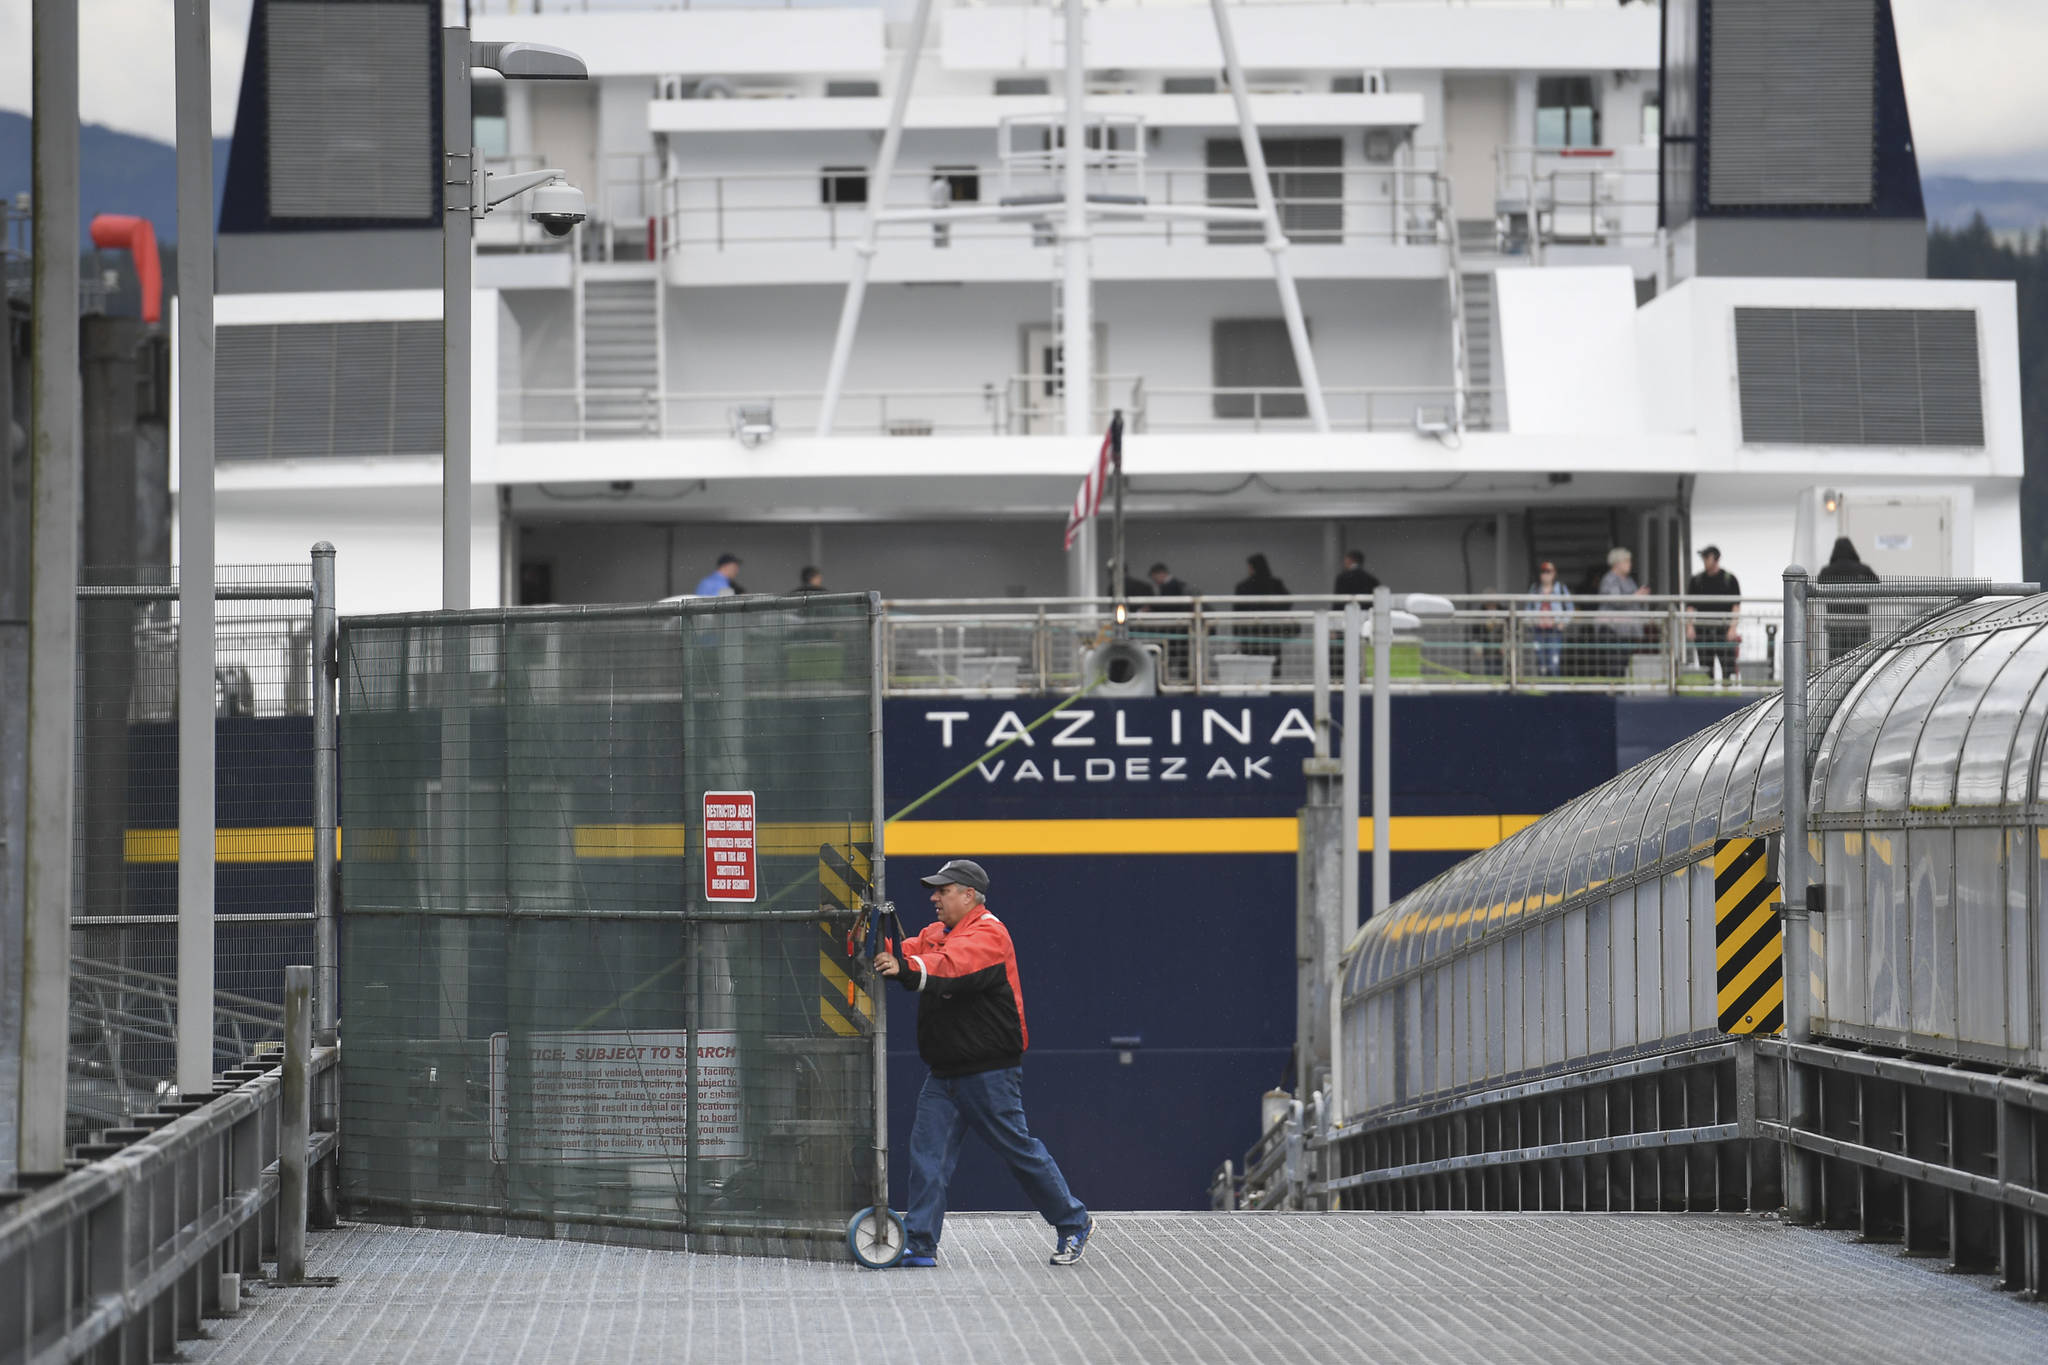 The Alaska Marine Highway System employee opens the vehicle gate after the Tazlina arrives at the Auke Bay Terminal in July 2019. (Michael Penn | Juneau Empire File)